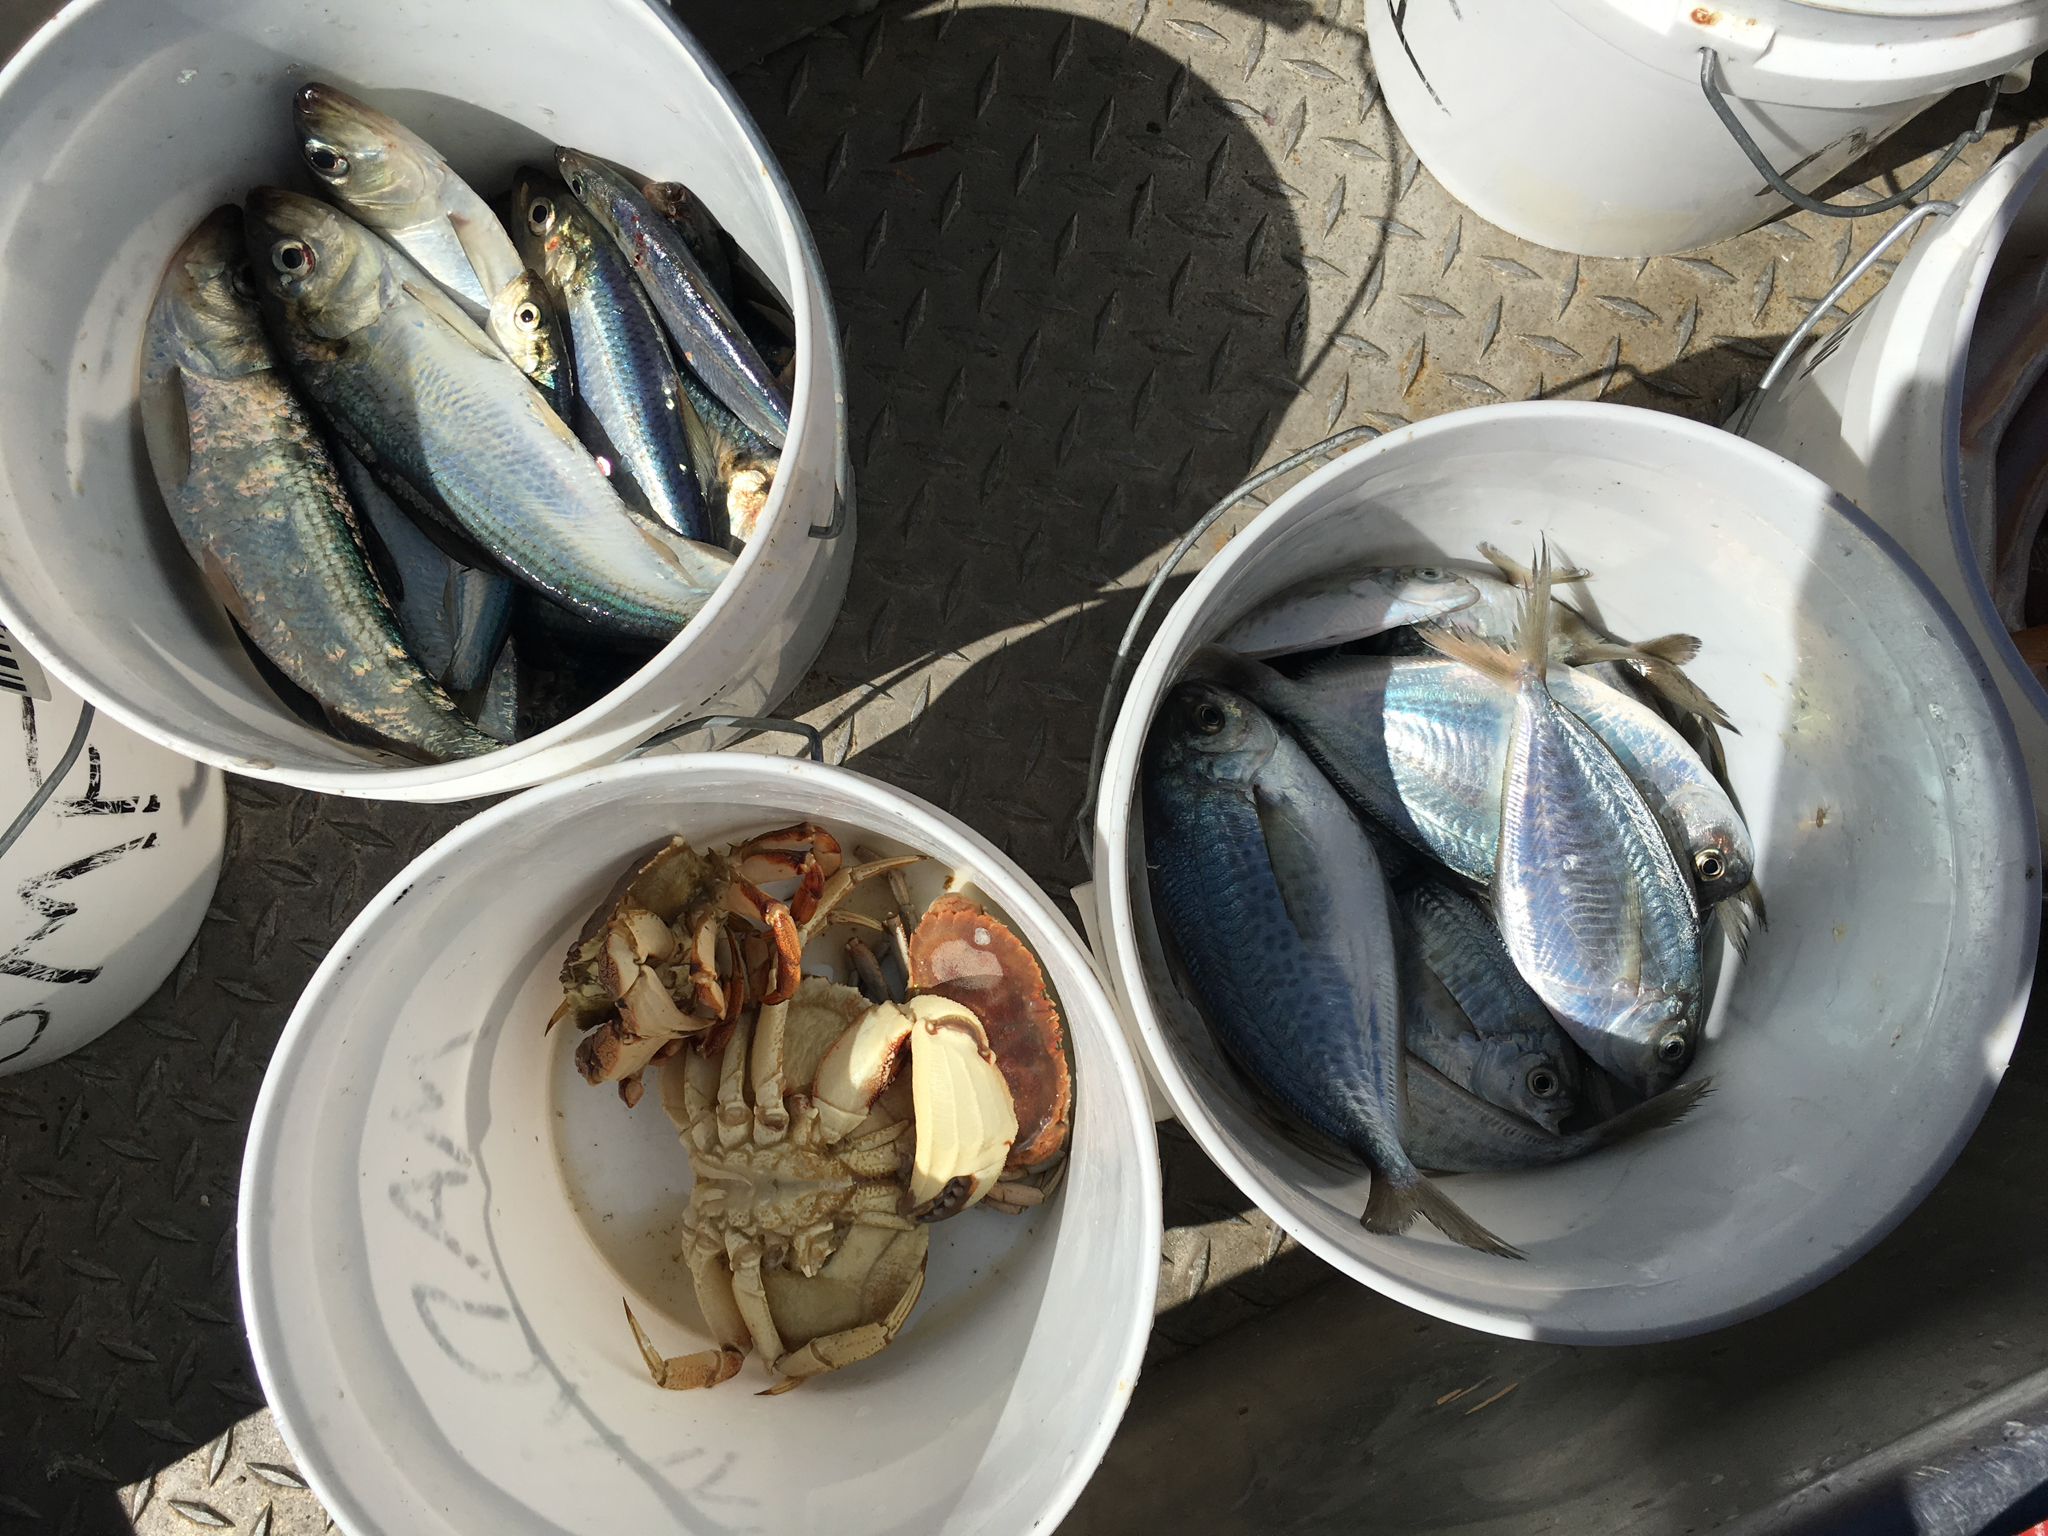 The team sorts the catch by species, in this case river herring, butterfish, and rock crab. Photo by Nicola Twilley